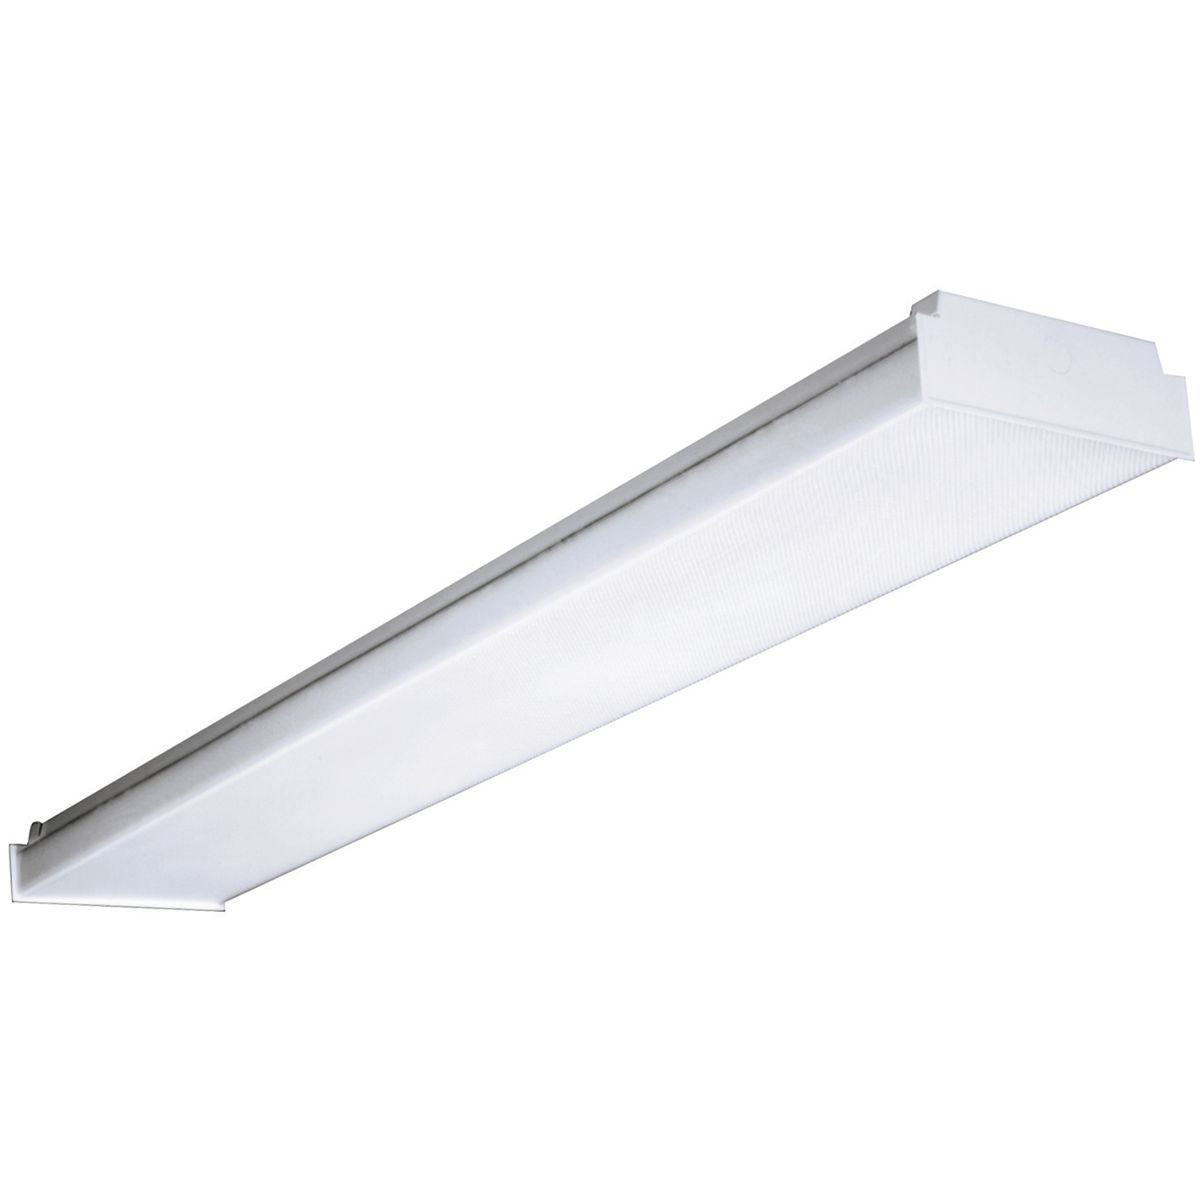 Columbia Lighting,AWW4-332-3EU,WRAP 4FT 3L 32W 120-277V T8 BAL